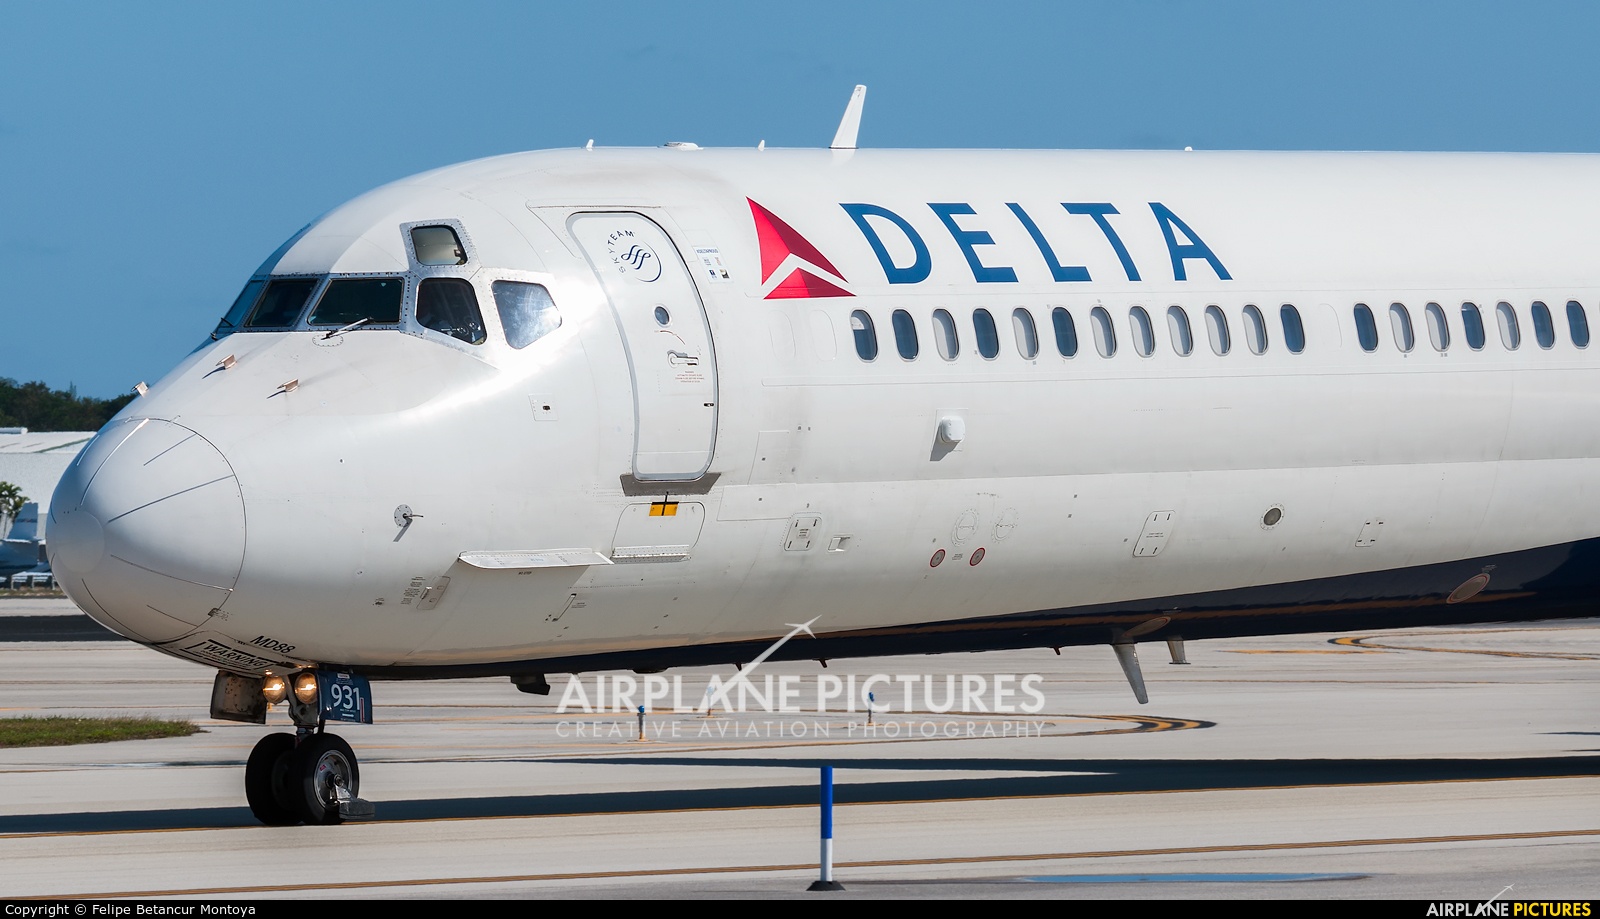 Delta Air Lines N931DL aircraft at Fort Lauderdale - Hollywood Intl